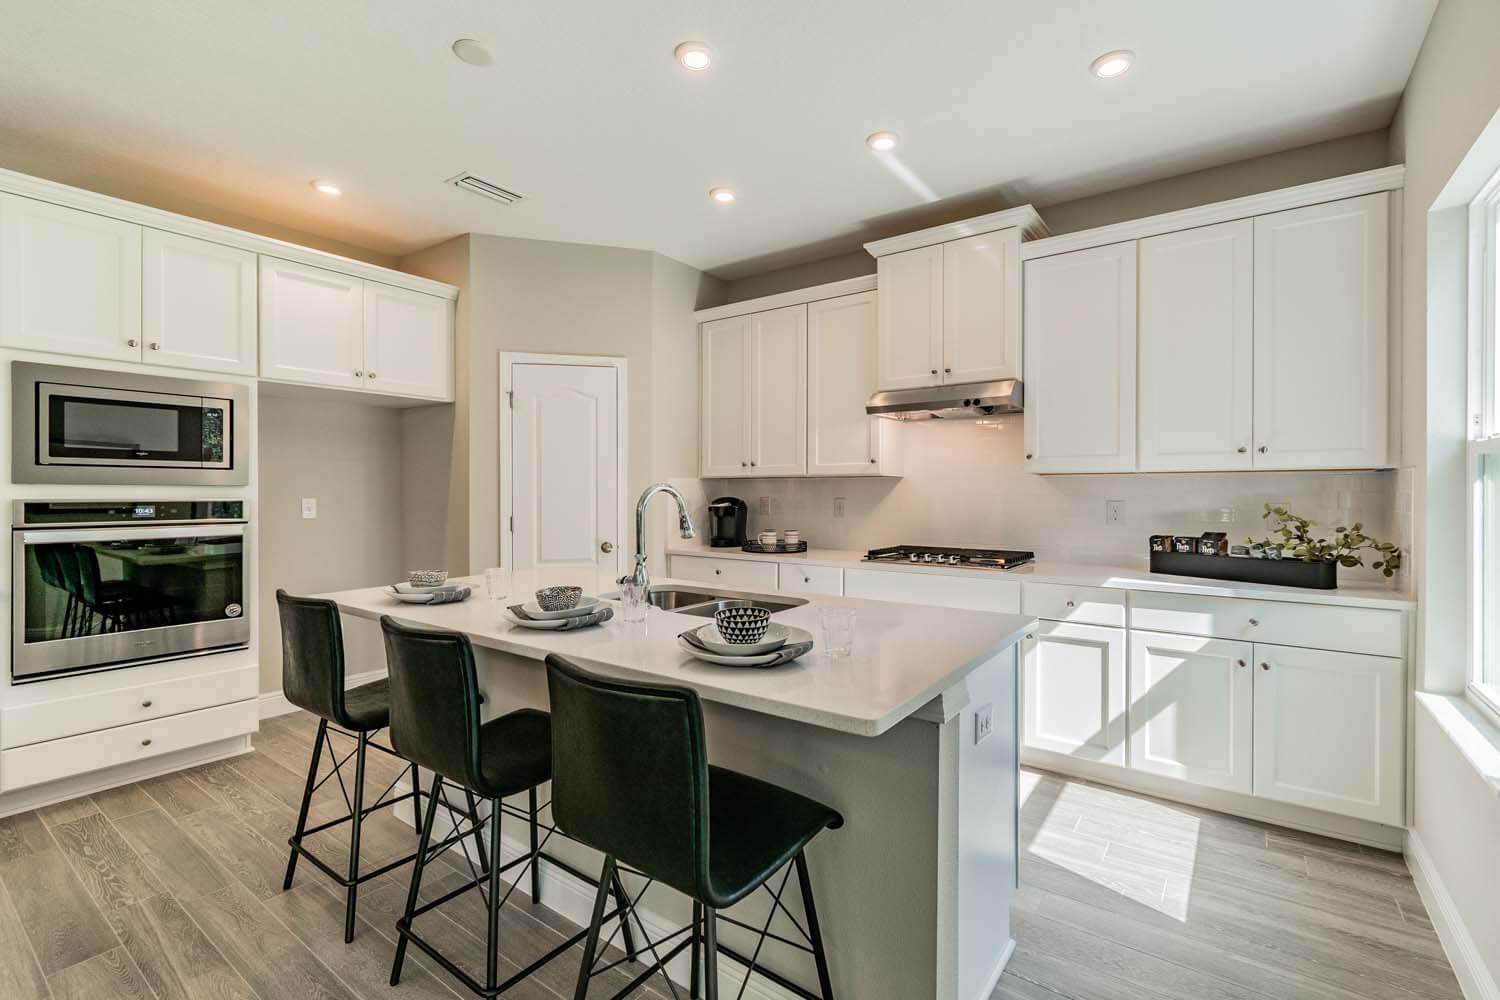 New Tampa Single Family Home Quick Possession Newhaven in Sandhill Ridge, located at 11506 Tanner Ridge Place, Riverview, FL (LOT 11) Built By Cardel Homes Tampa